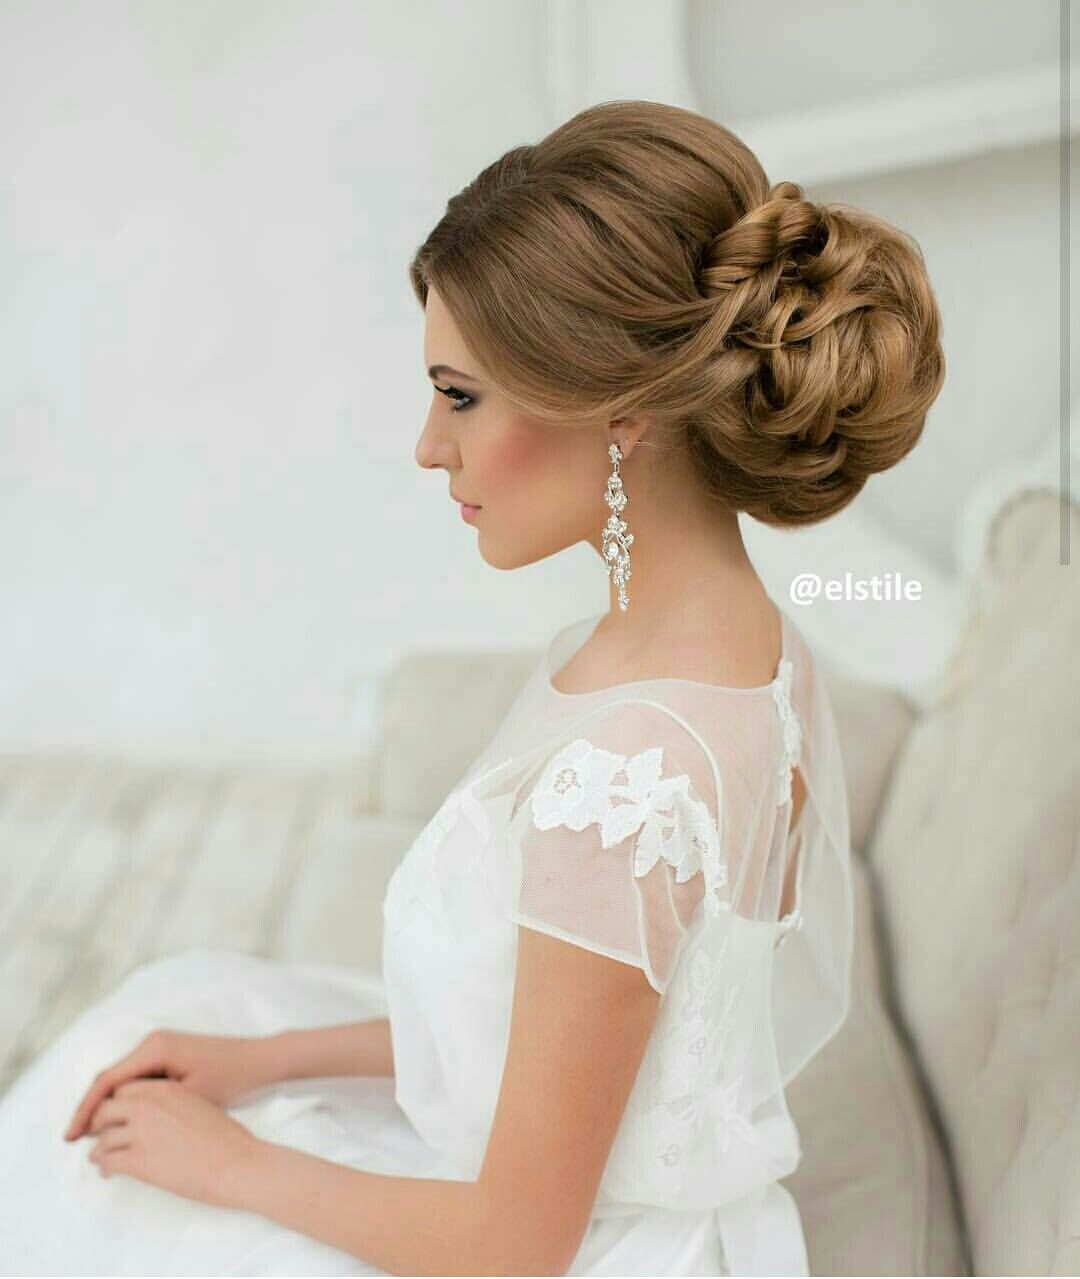 Pin by Tjie Lim on Wedding hairdo | Pinterest | Up dos, Hair style ...